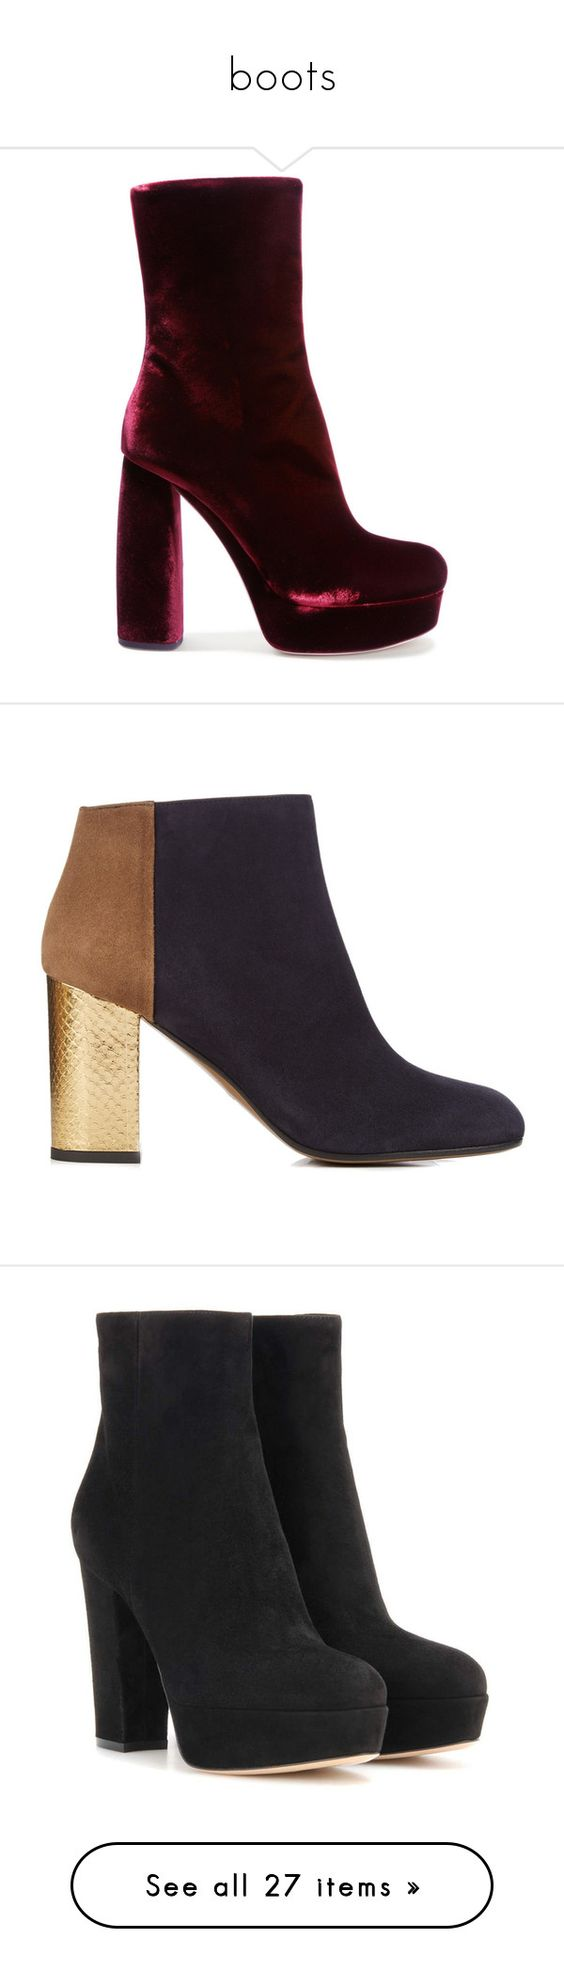 """""""boots"""" by senedjara on Polyvore featuring shoes, boots, ankle booties, ankle boot, high heel boots, high heel ankle boots, high heel platform boots, platform ankle booties, block heel ankle boots e booties"""